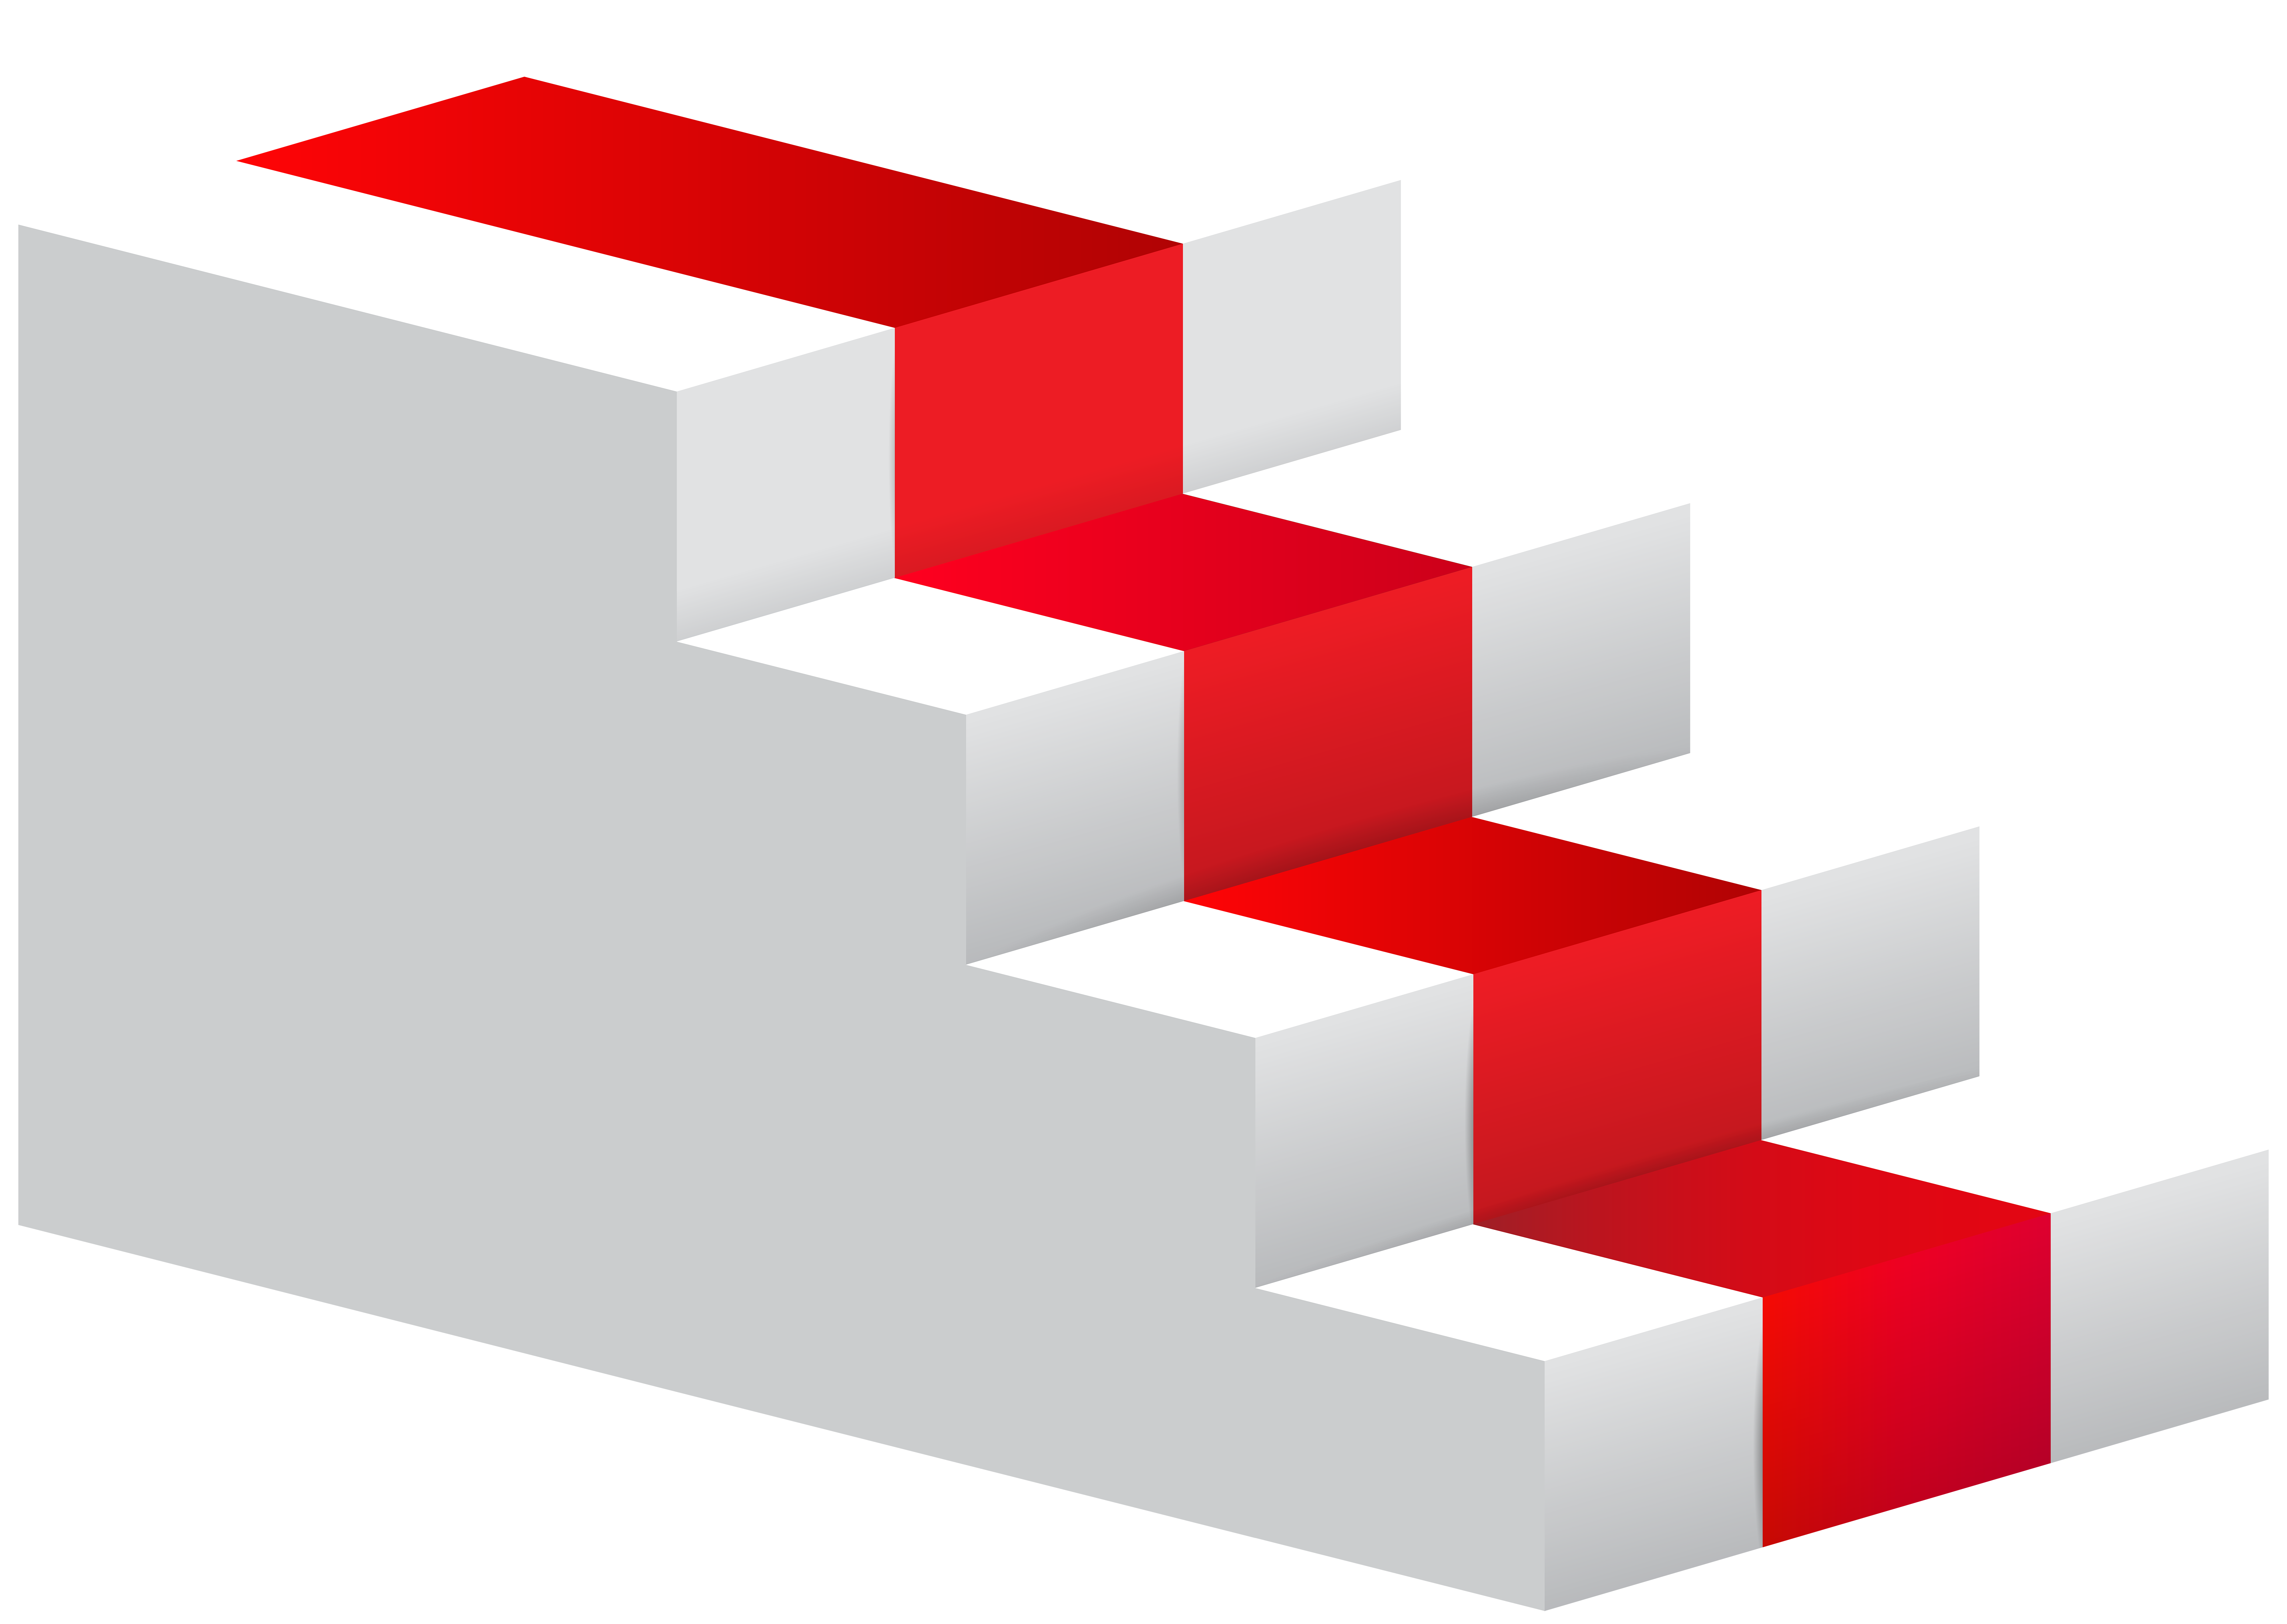 Stairs transparent red. Png clip art image